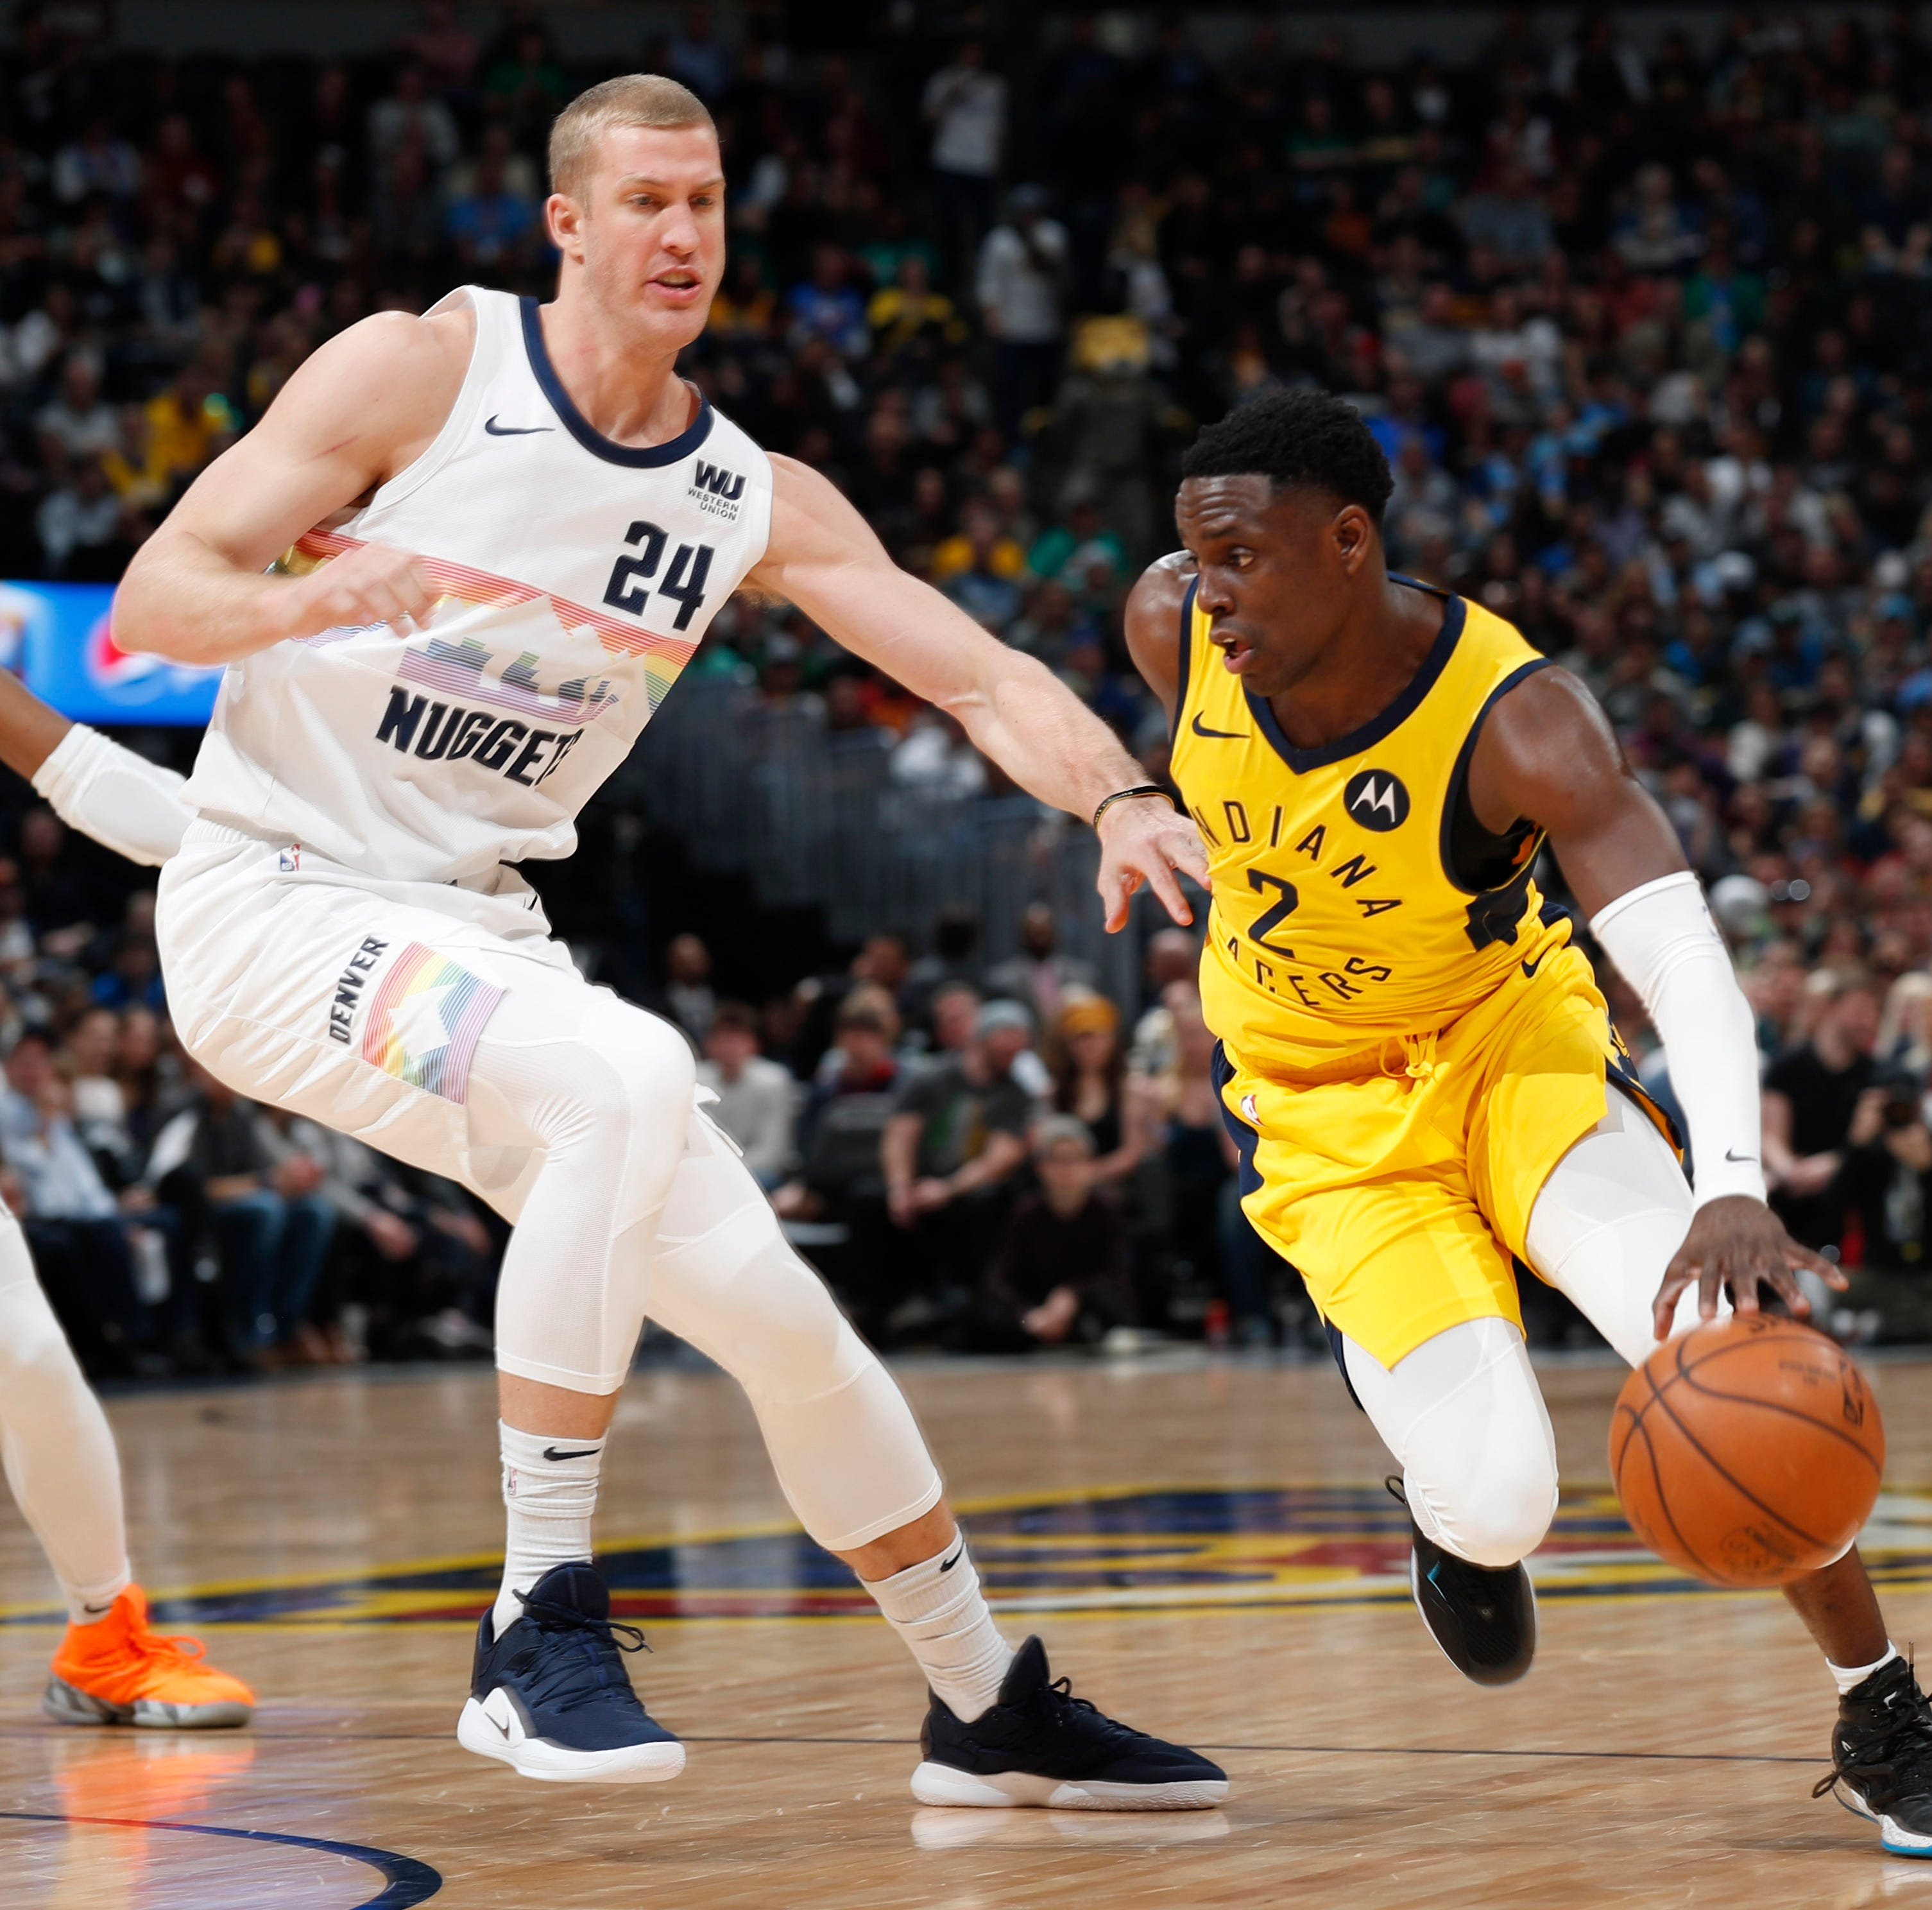 Insider: Pacers were elite in clutch with Victor Oladipo, struggling with Bojan Bogdanovic